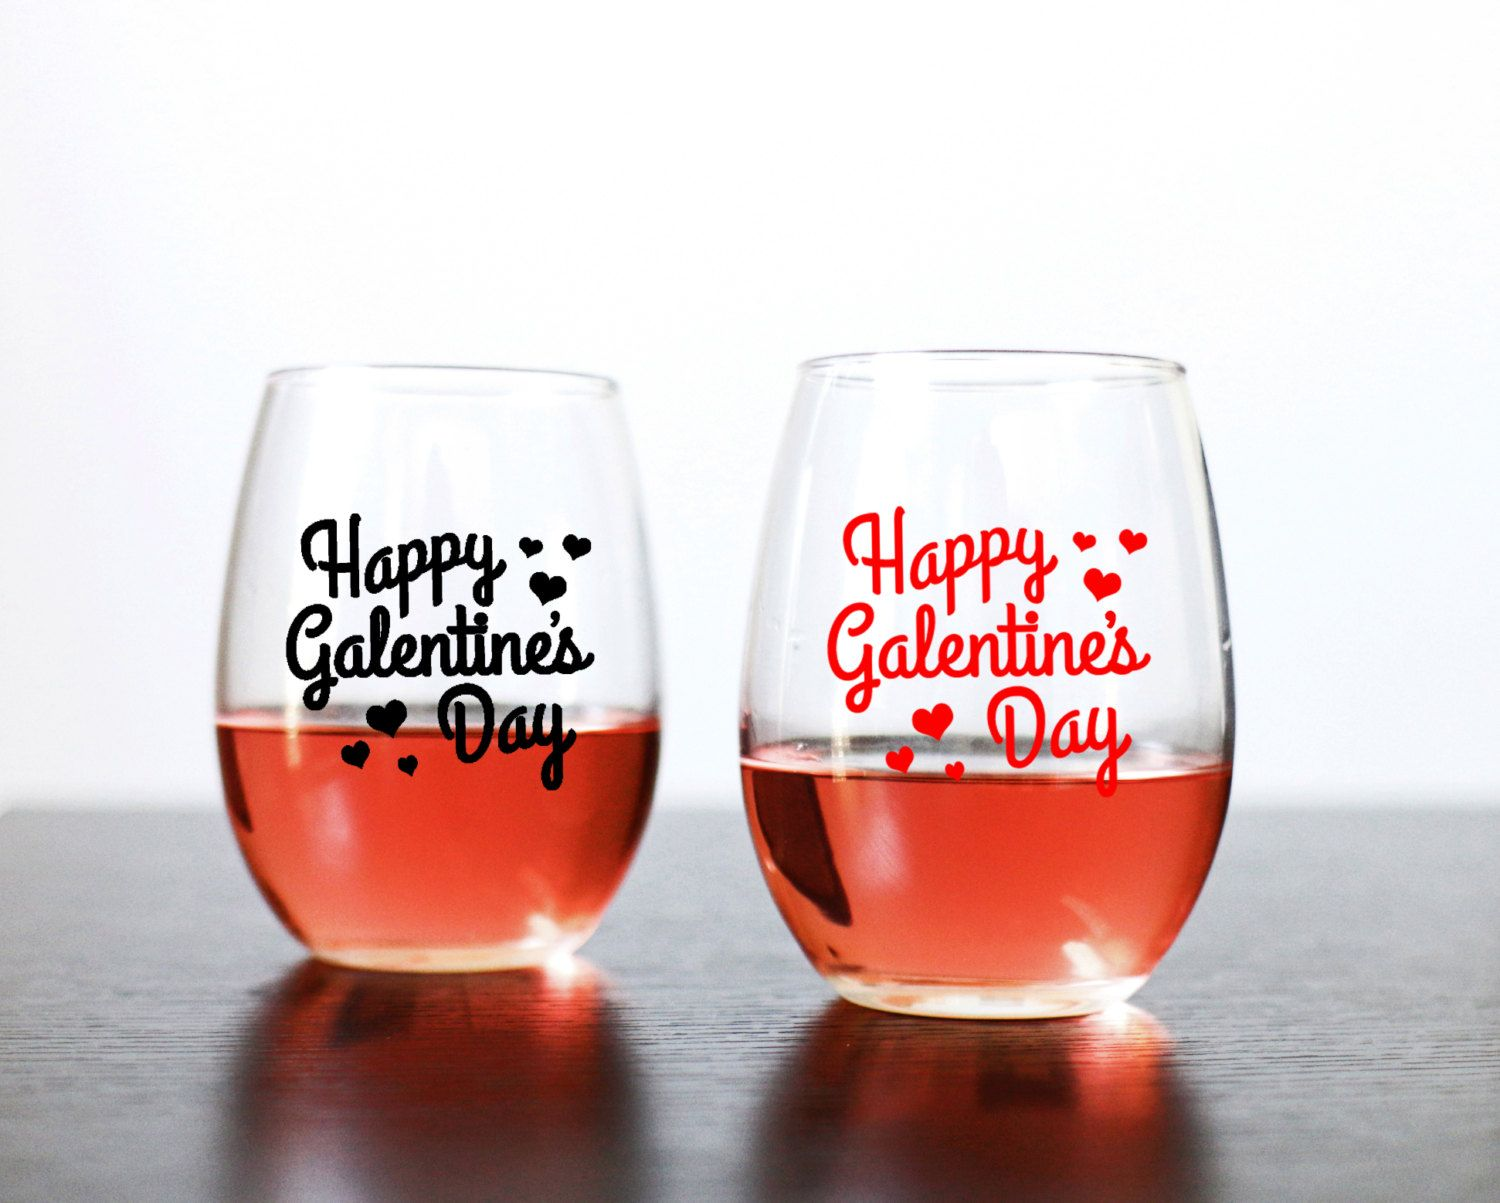 Happy Galentine S Day 15oz Stemless Wine Glass Parks And Rec Inspired Wine Glass Gifts For Her Ladie Happy Galentines Day Glass Gifts Stemless Wine Glass